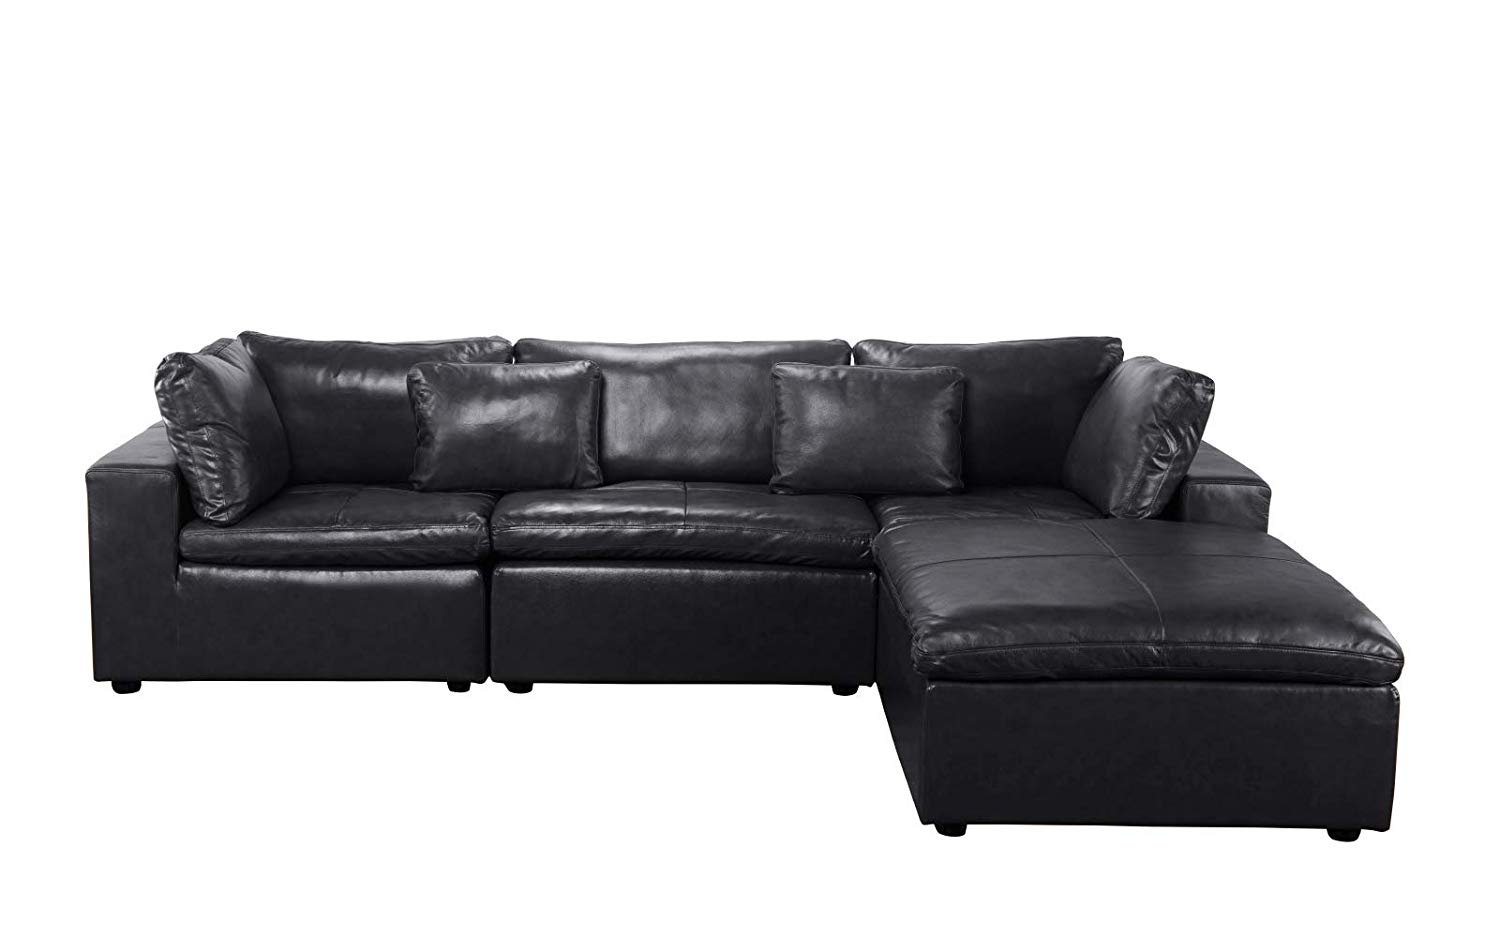 Large Sectional Sofa, Leather L Shape Couch with Wide ...